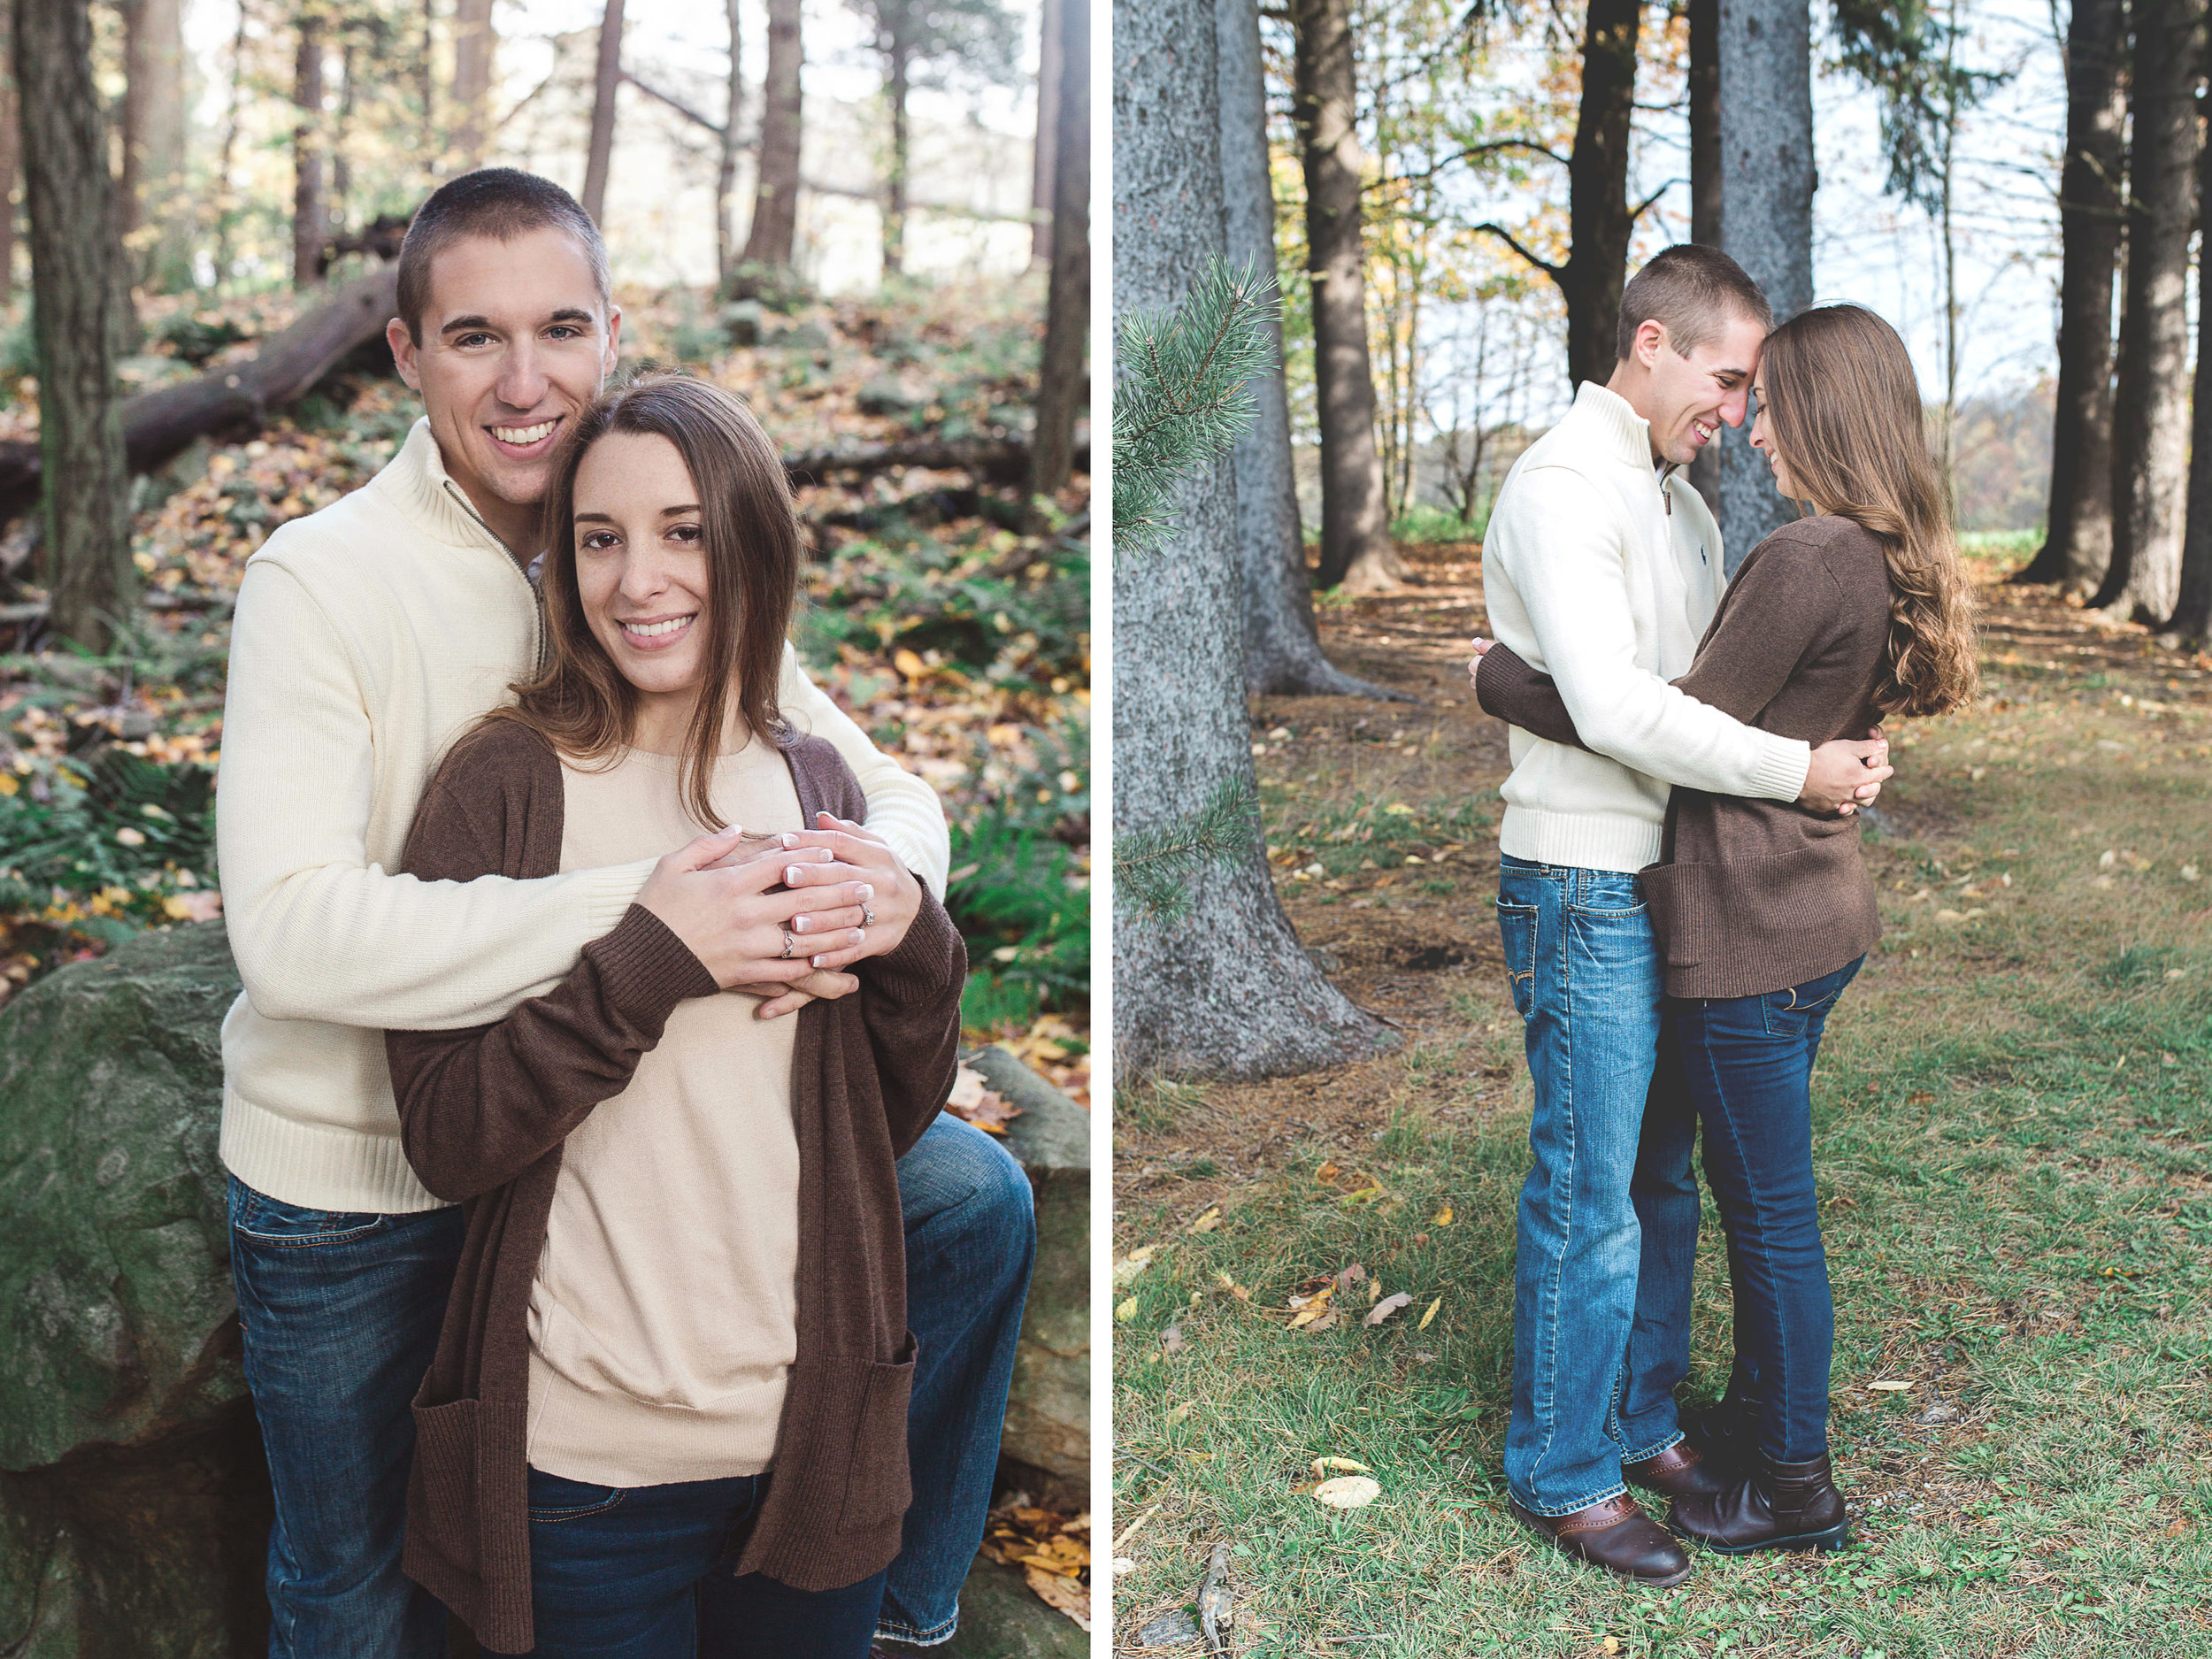 Altoona PA central pa state college Monroville wedding photographer engagement lemon house cresson pa_mariadylan (2).jpg